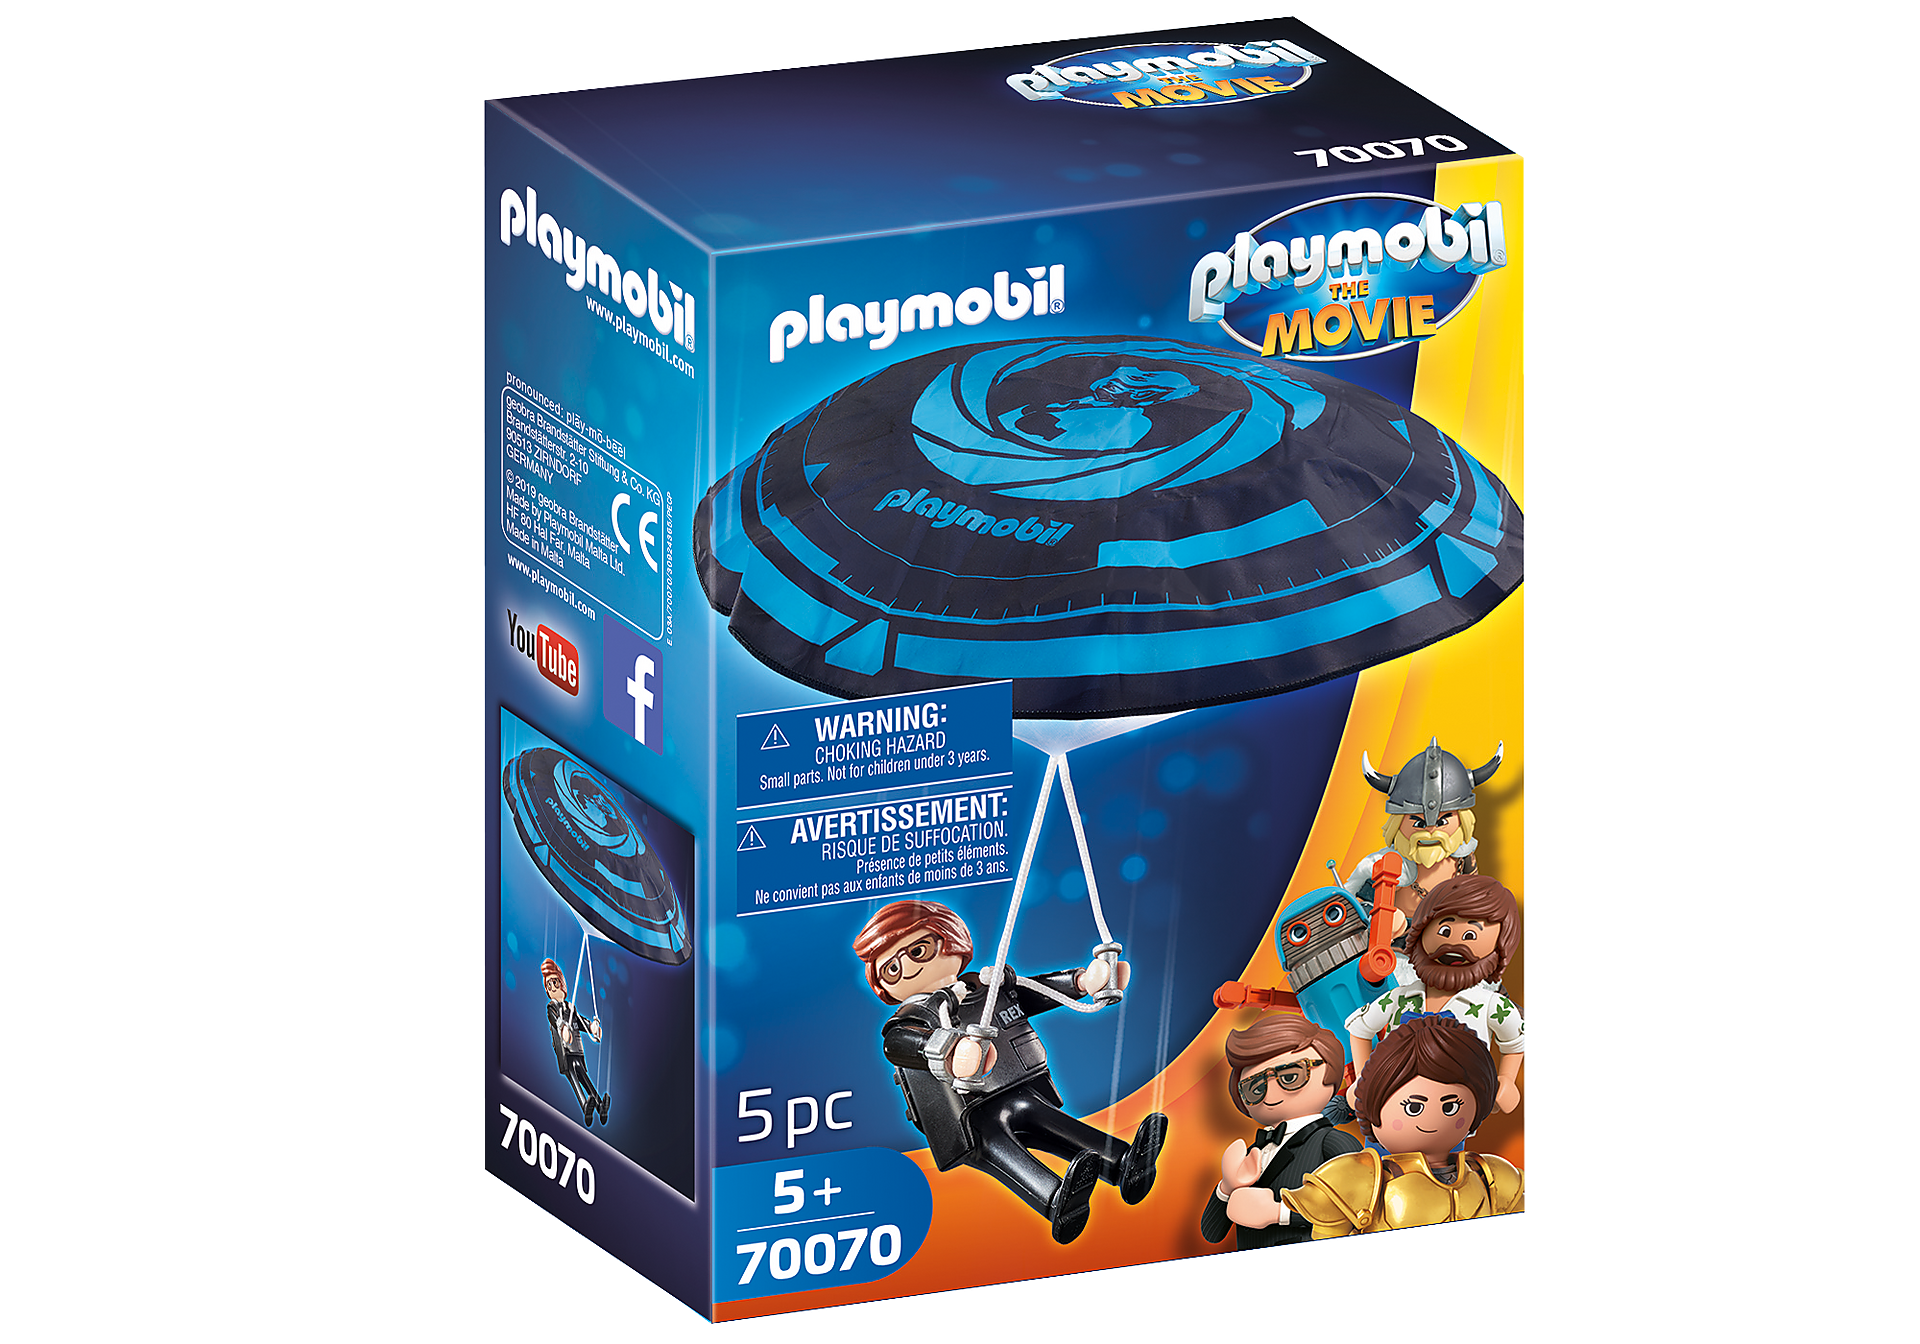 70070 PLAYMOBIL: THE MOVIE Rex Dasher with Parachute zoom image2